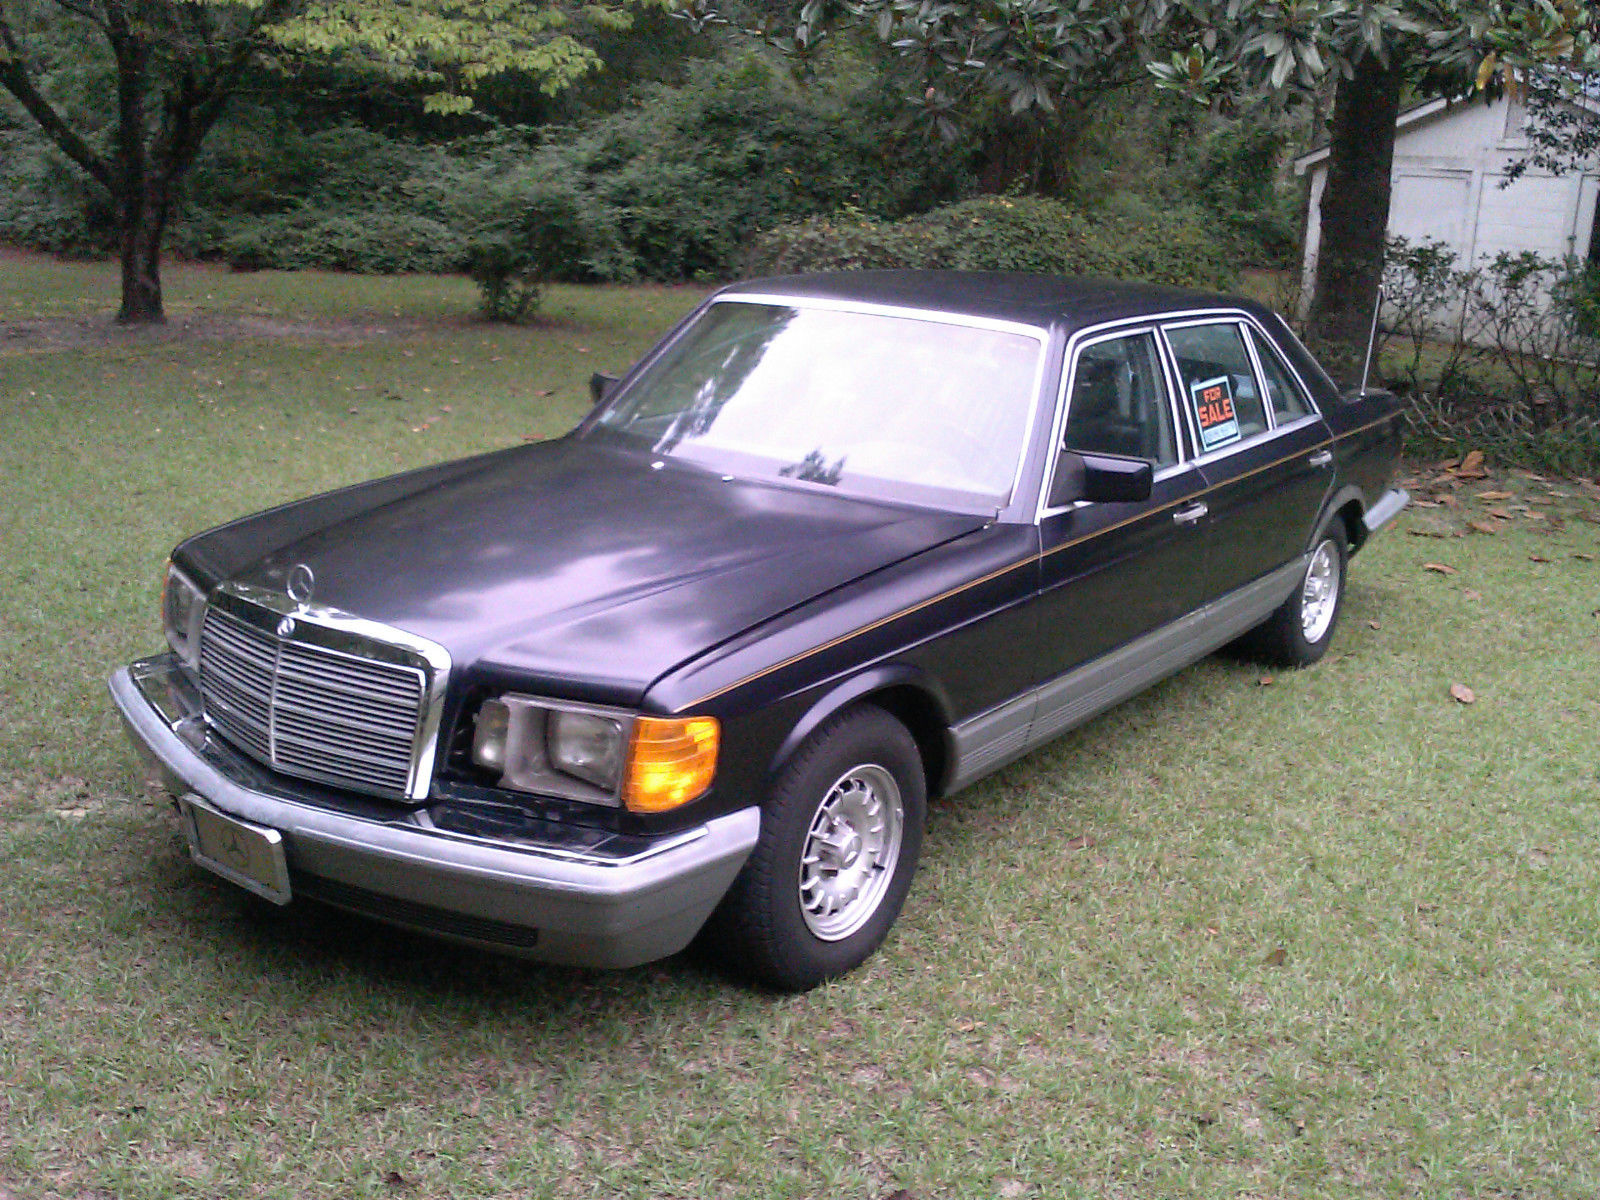 1985 mercedes benz 500sel 4 door sedan 8 cylinder for 1985 mercedes benz 500sel